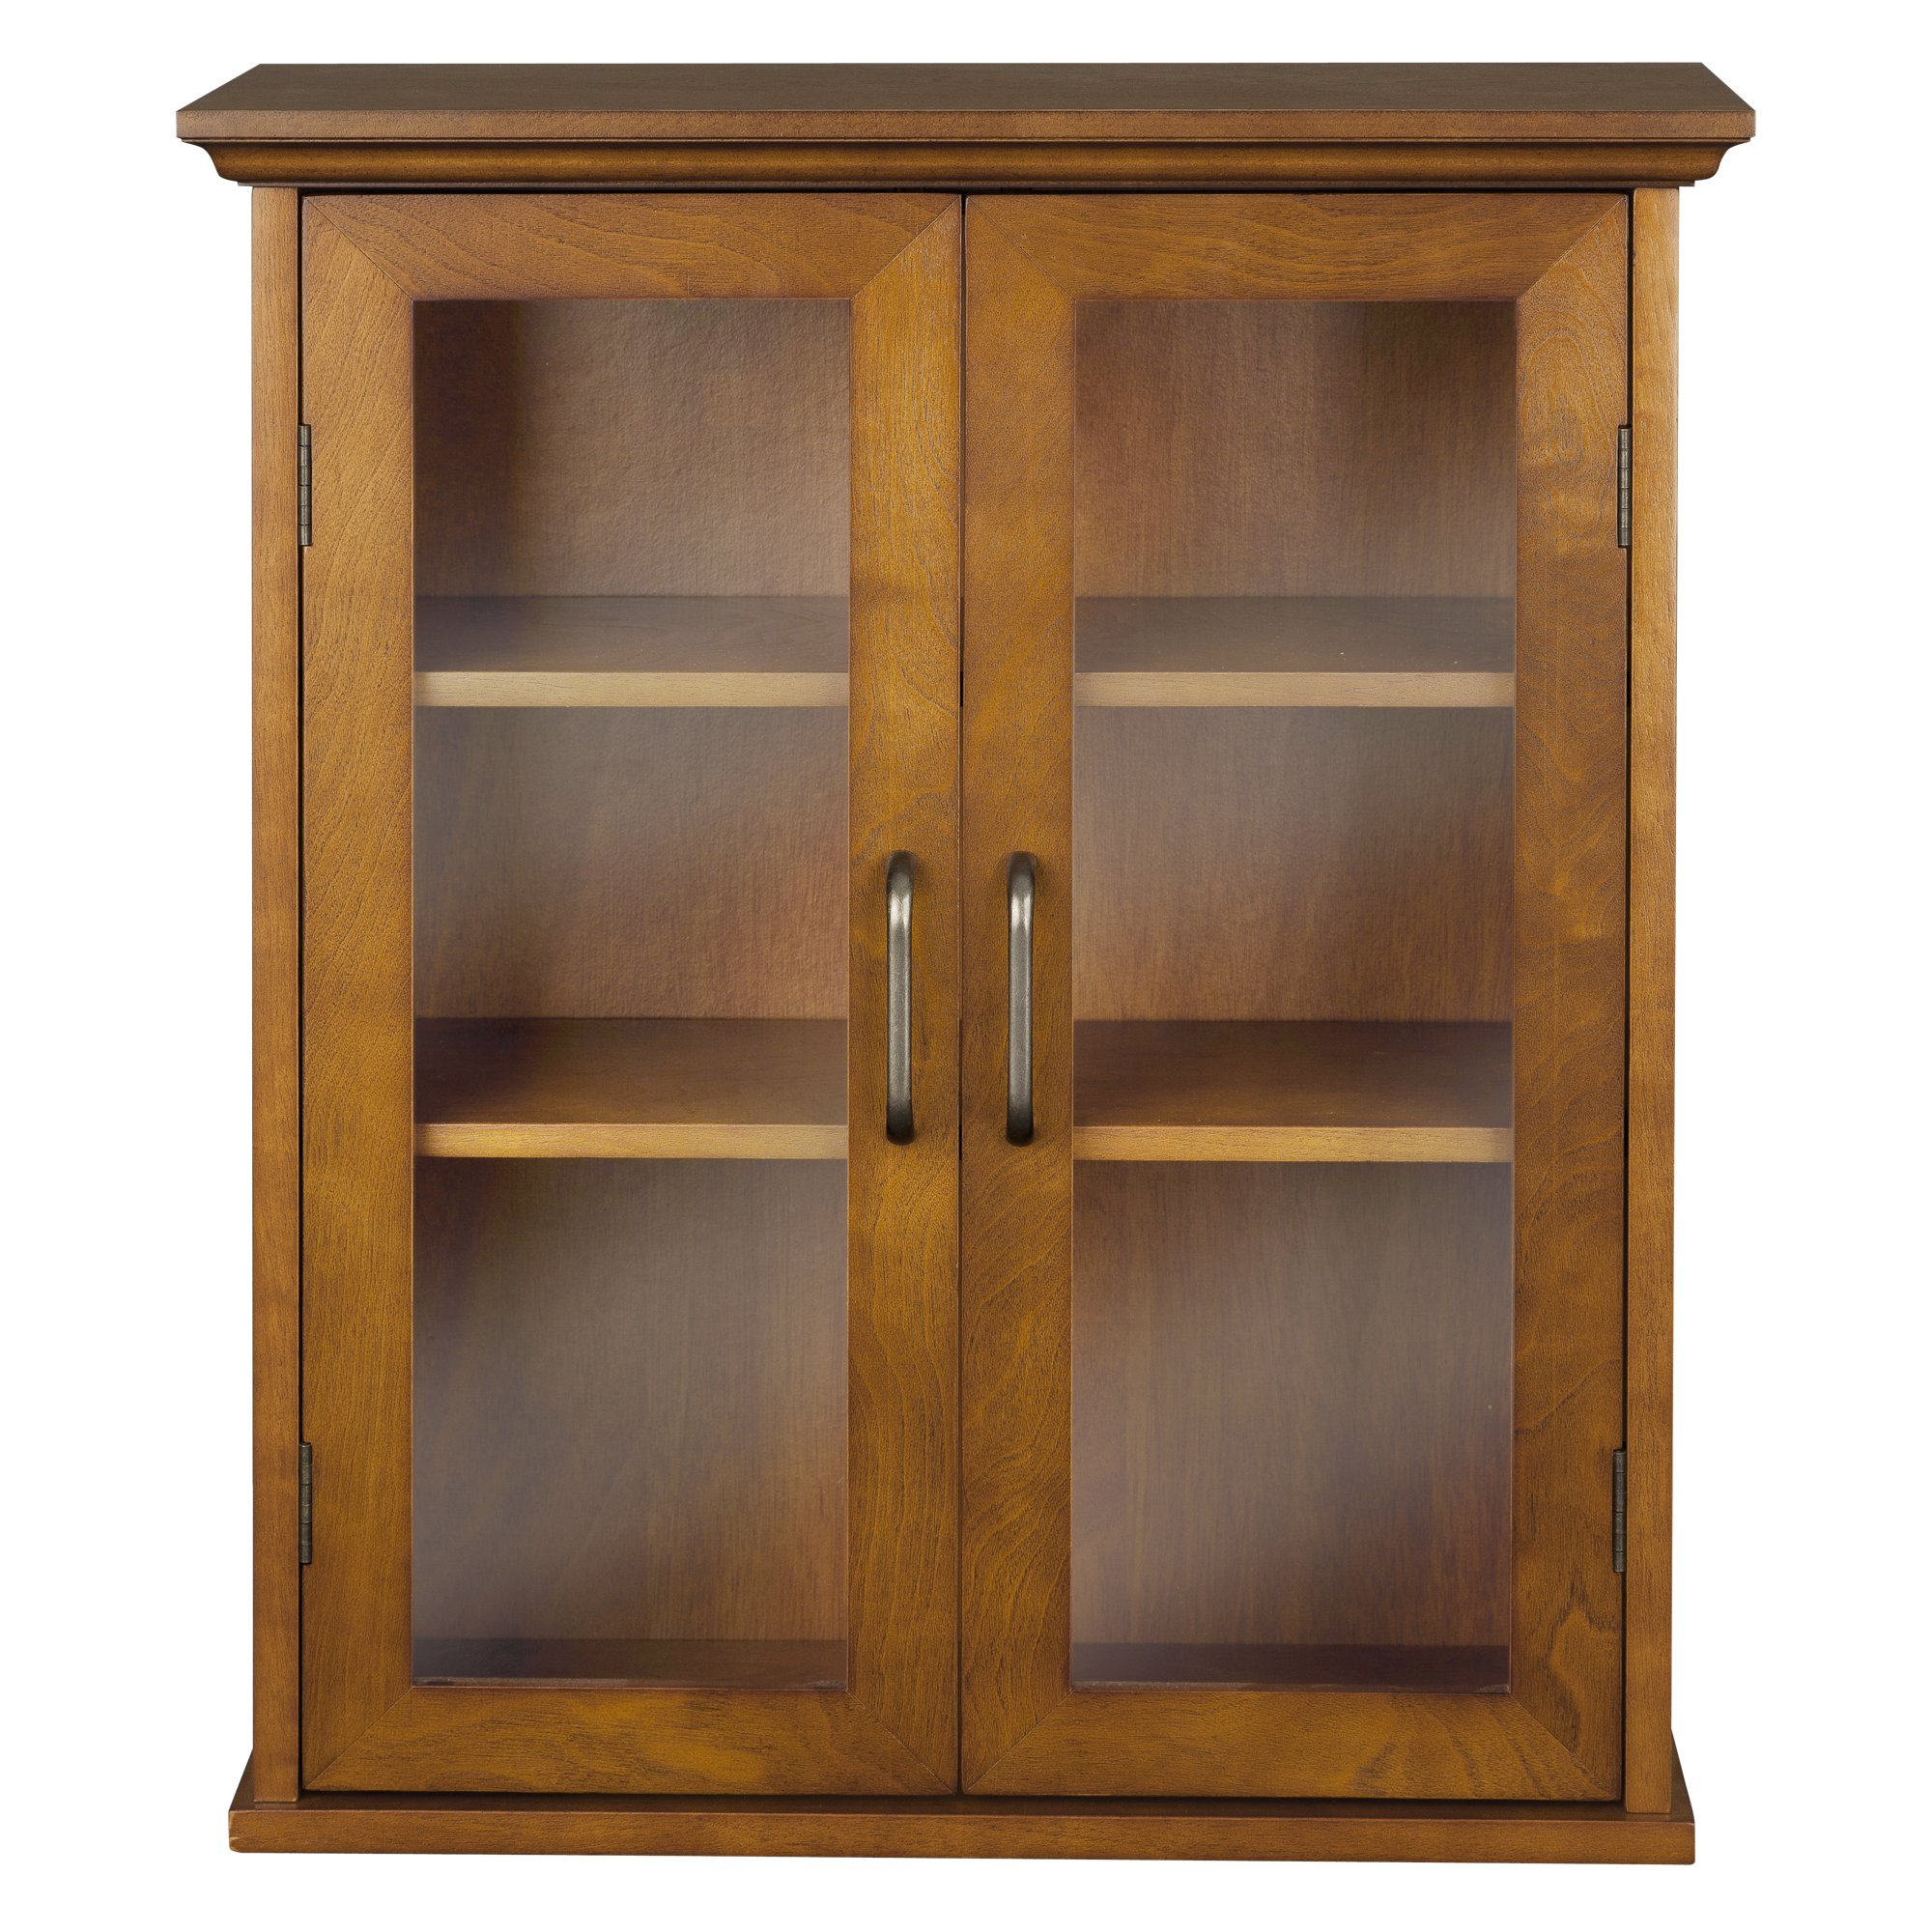 Elegant Home Fashion Anna Wall Cabinet with 2-Door, Oil Oak by Elegant Home Fashion